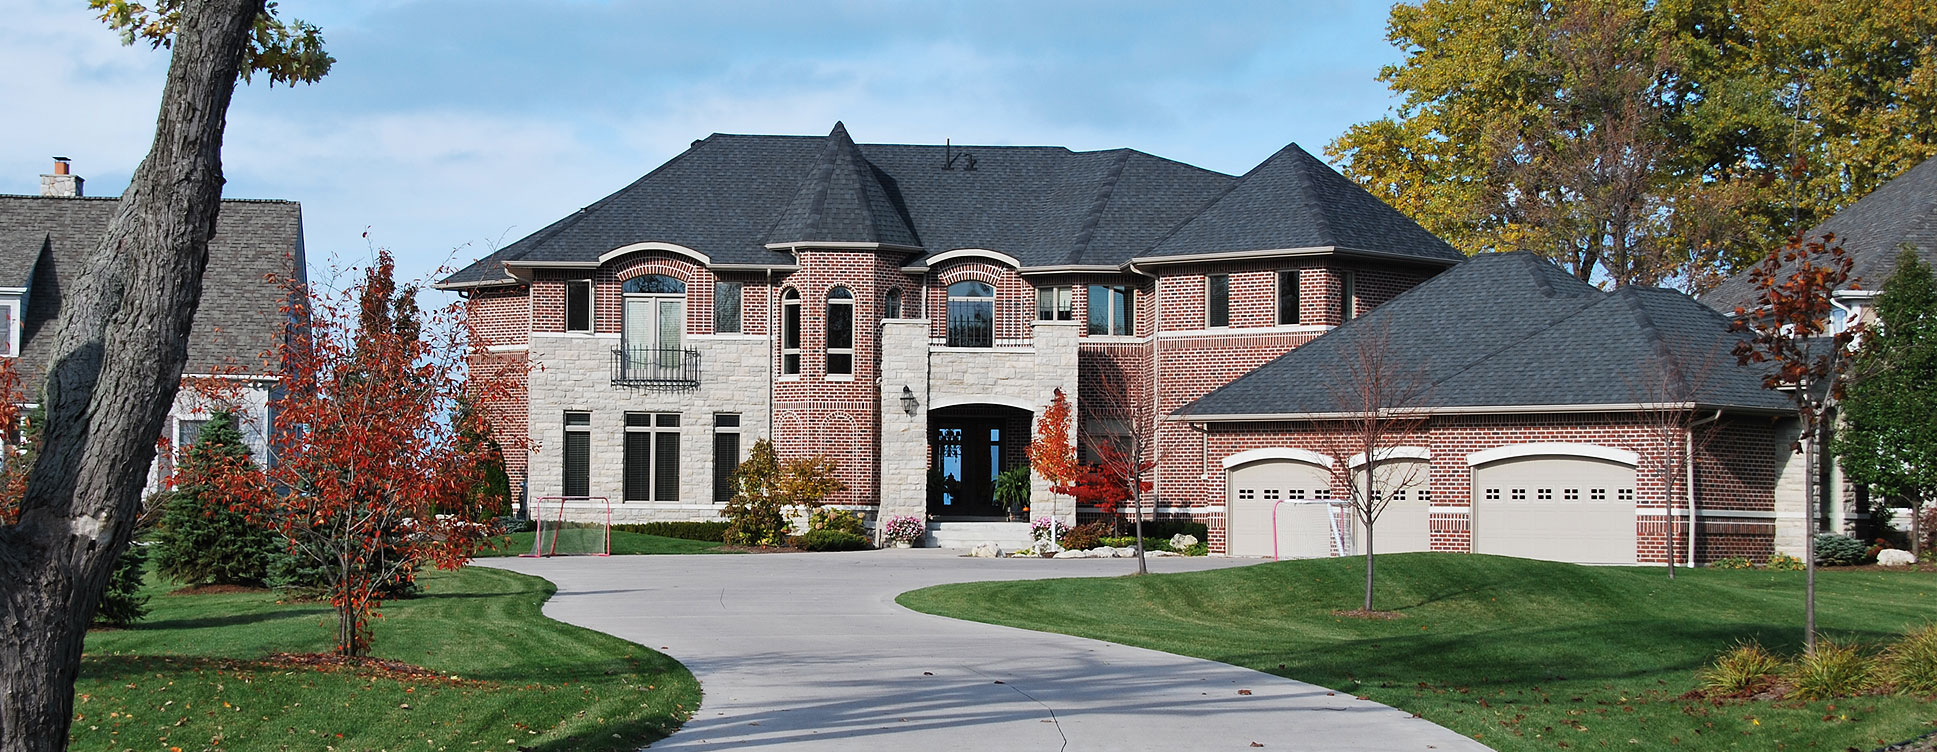 Sergio bertucci one of a kind home in windsor ontario for Building a house in ontario